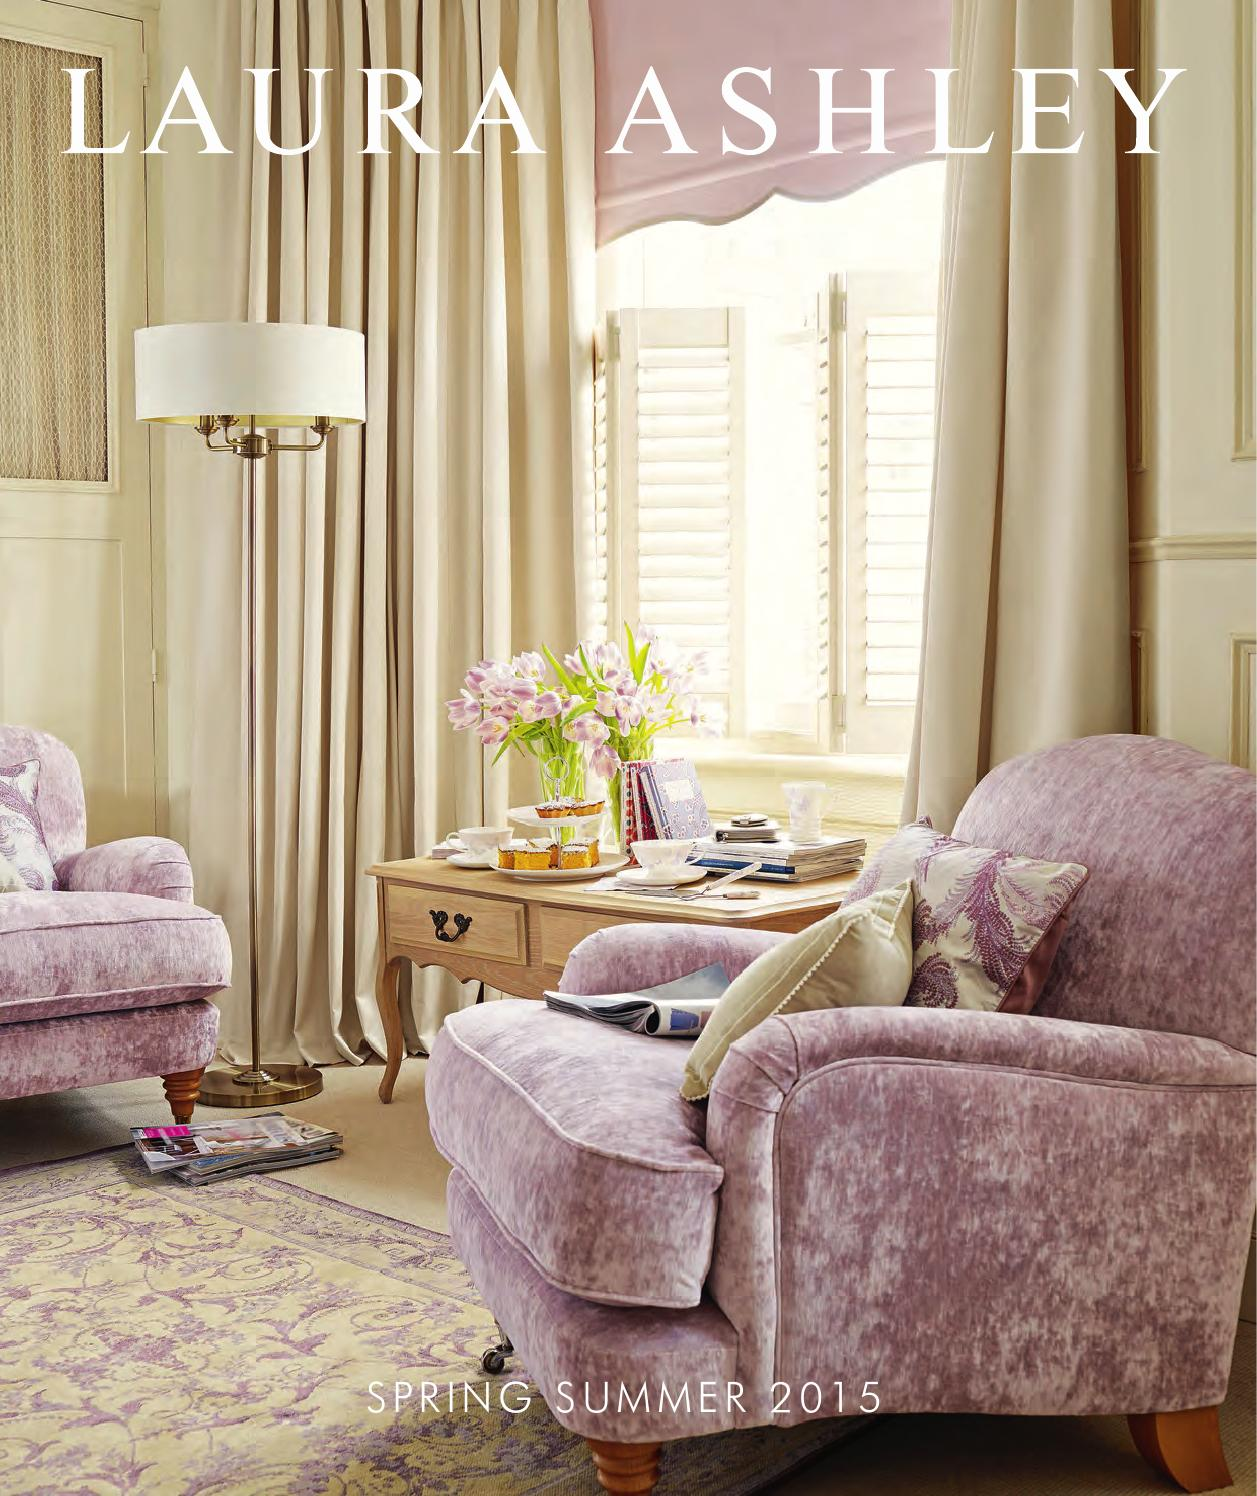 Furniture Paint Laura Ashley